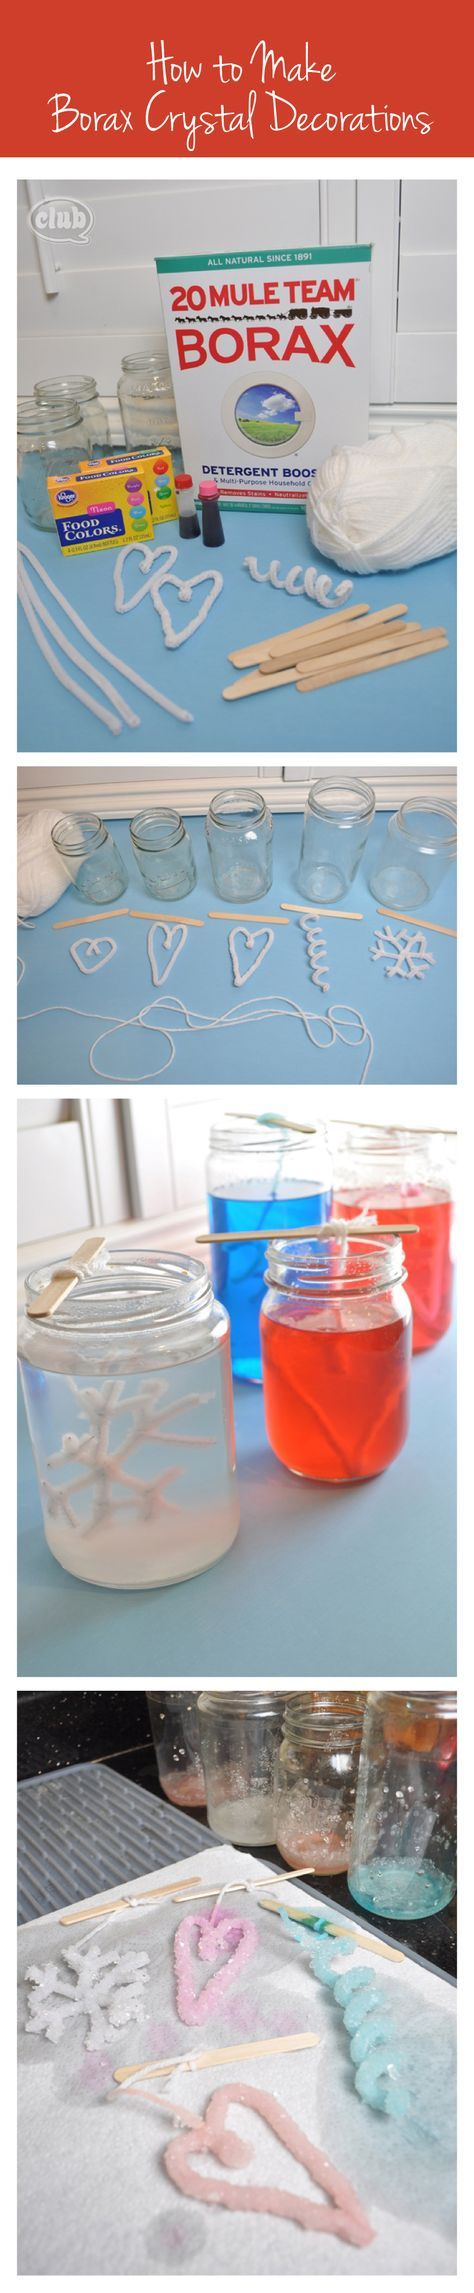 Borax crystal shapes.  Dissolve 1/3 cup borax in jar filled with boiling water.  Hang pipe cleaner shapes suspended from popsicle sticks.  Let sit overnight.  Can add food color to borax solution.